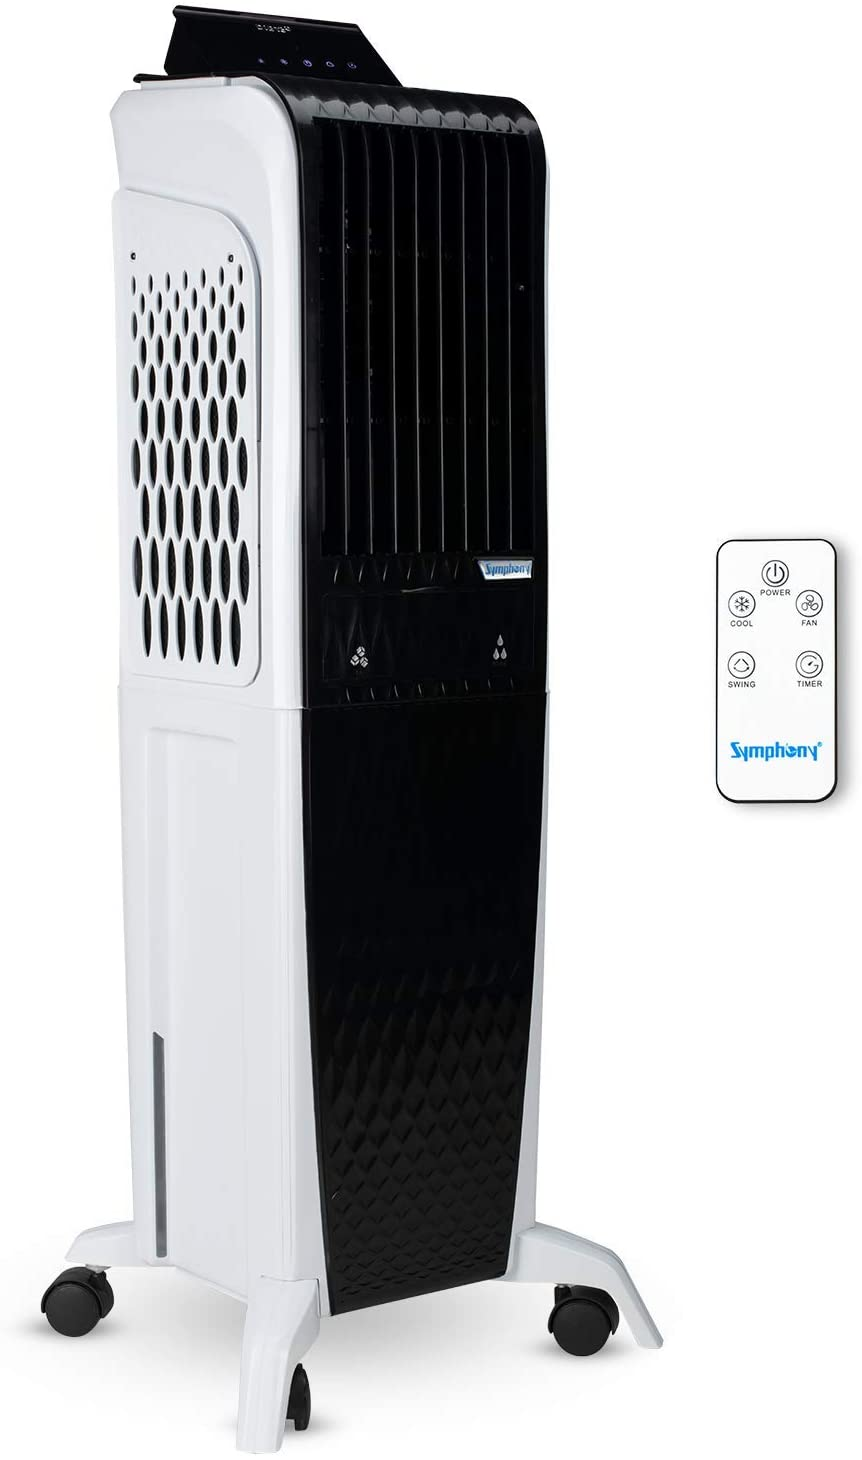 Symphony Diet 3D 40i Tower Air Cooler 40-litres with Magnetic Remote, 3-Side Cooling Pads, Pop-up Touchscreen, Multistage Air Purification & Low Power Consumption (Black & White)